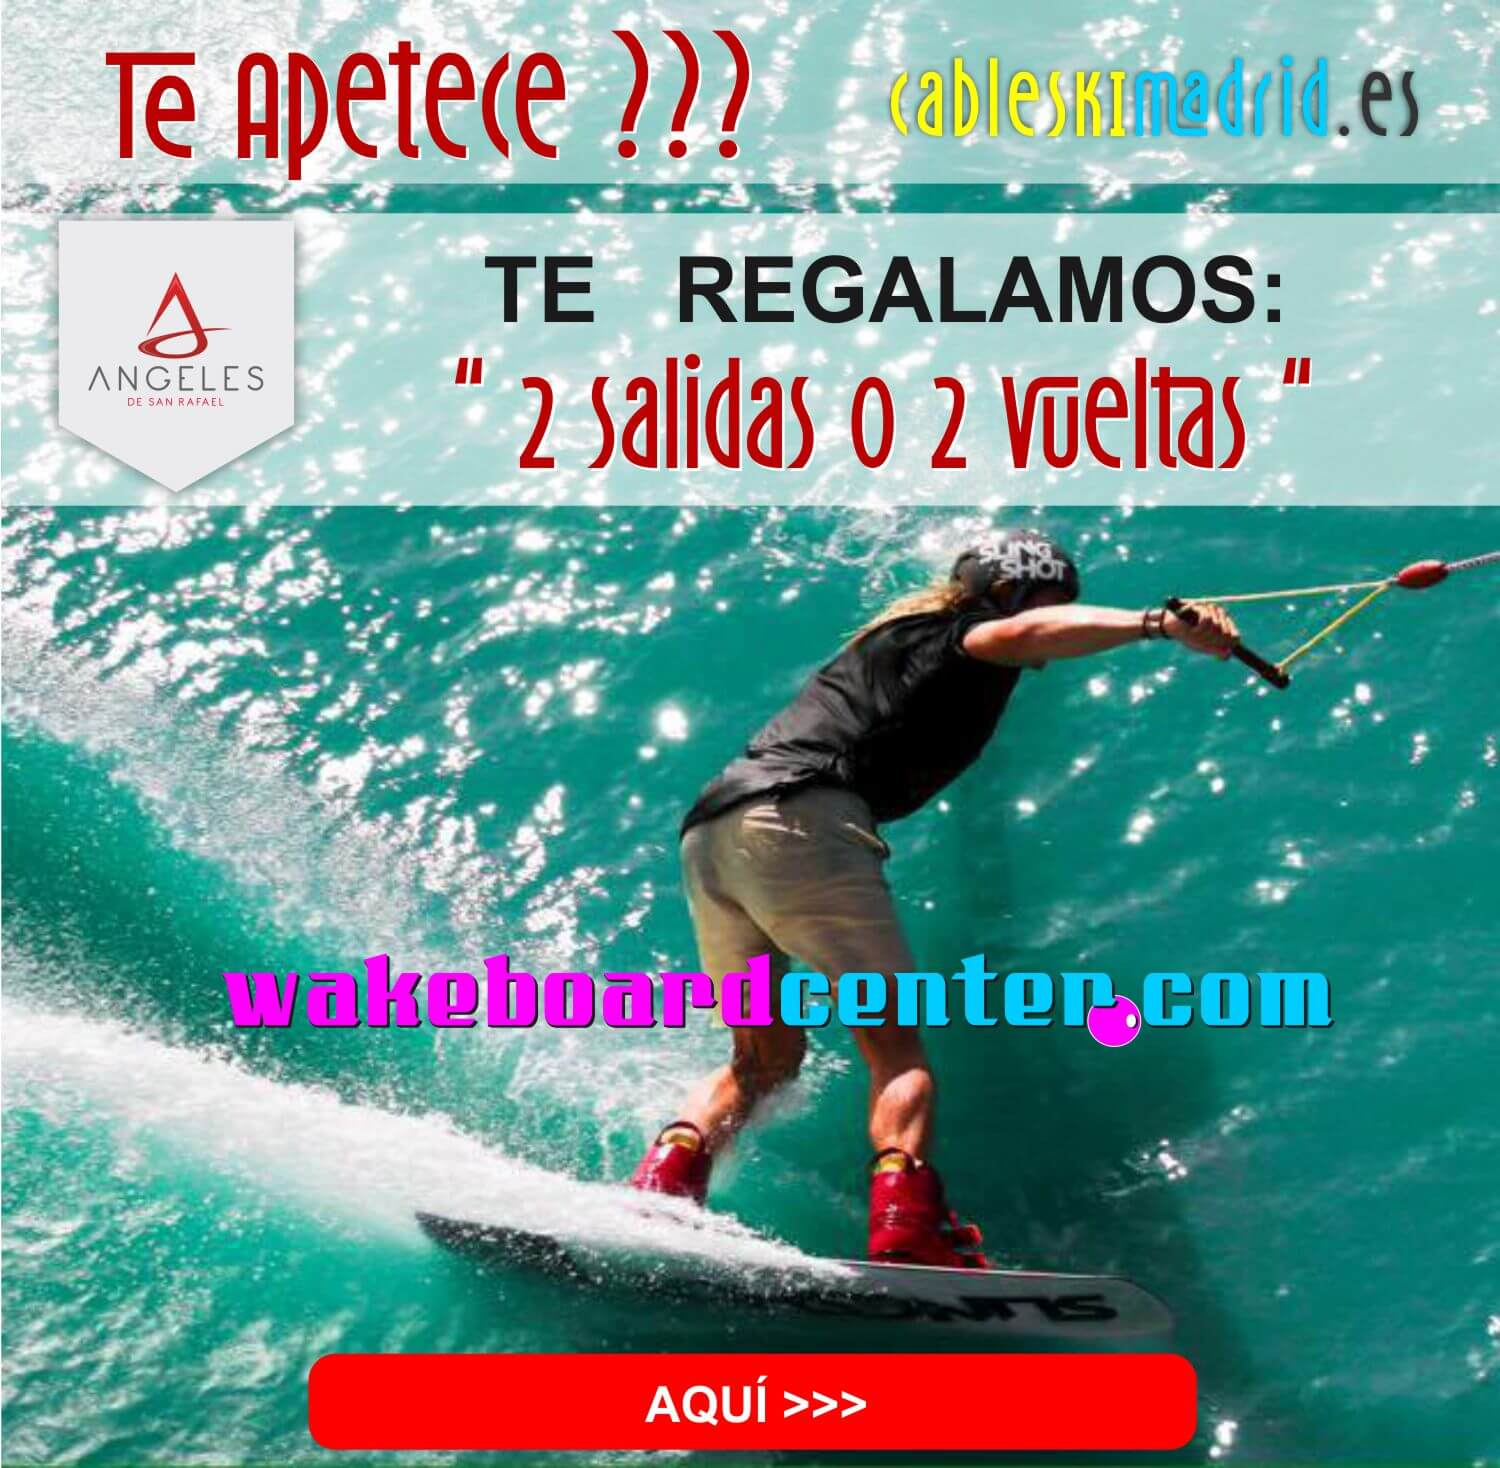 Oferta Cable Ski Los Angeles de San Rafael